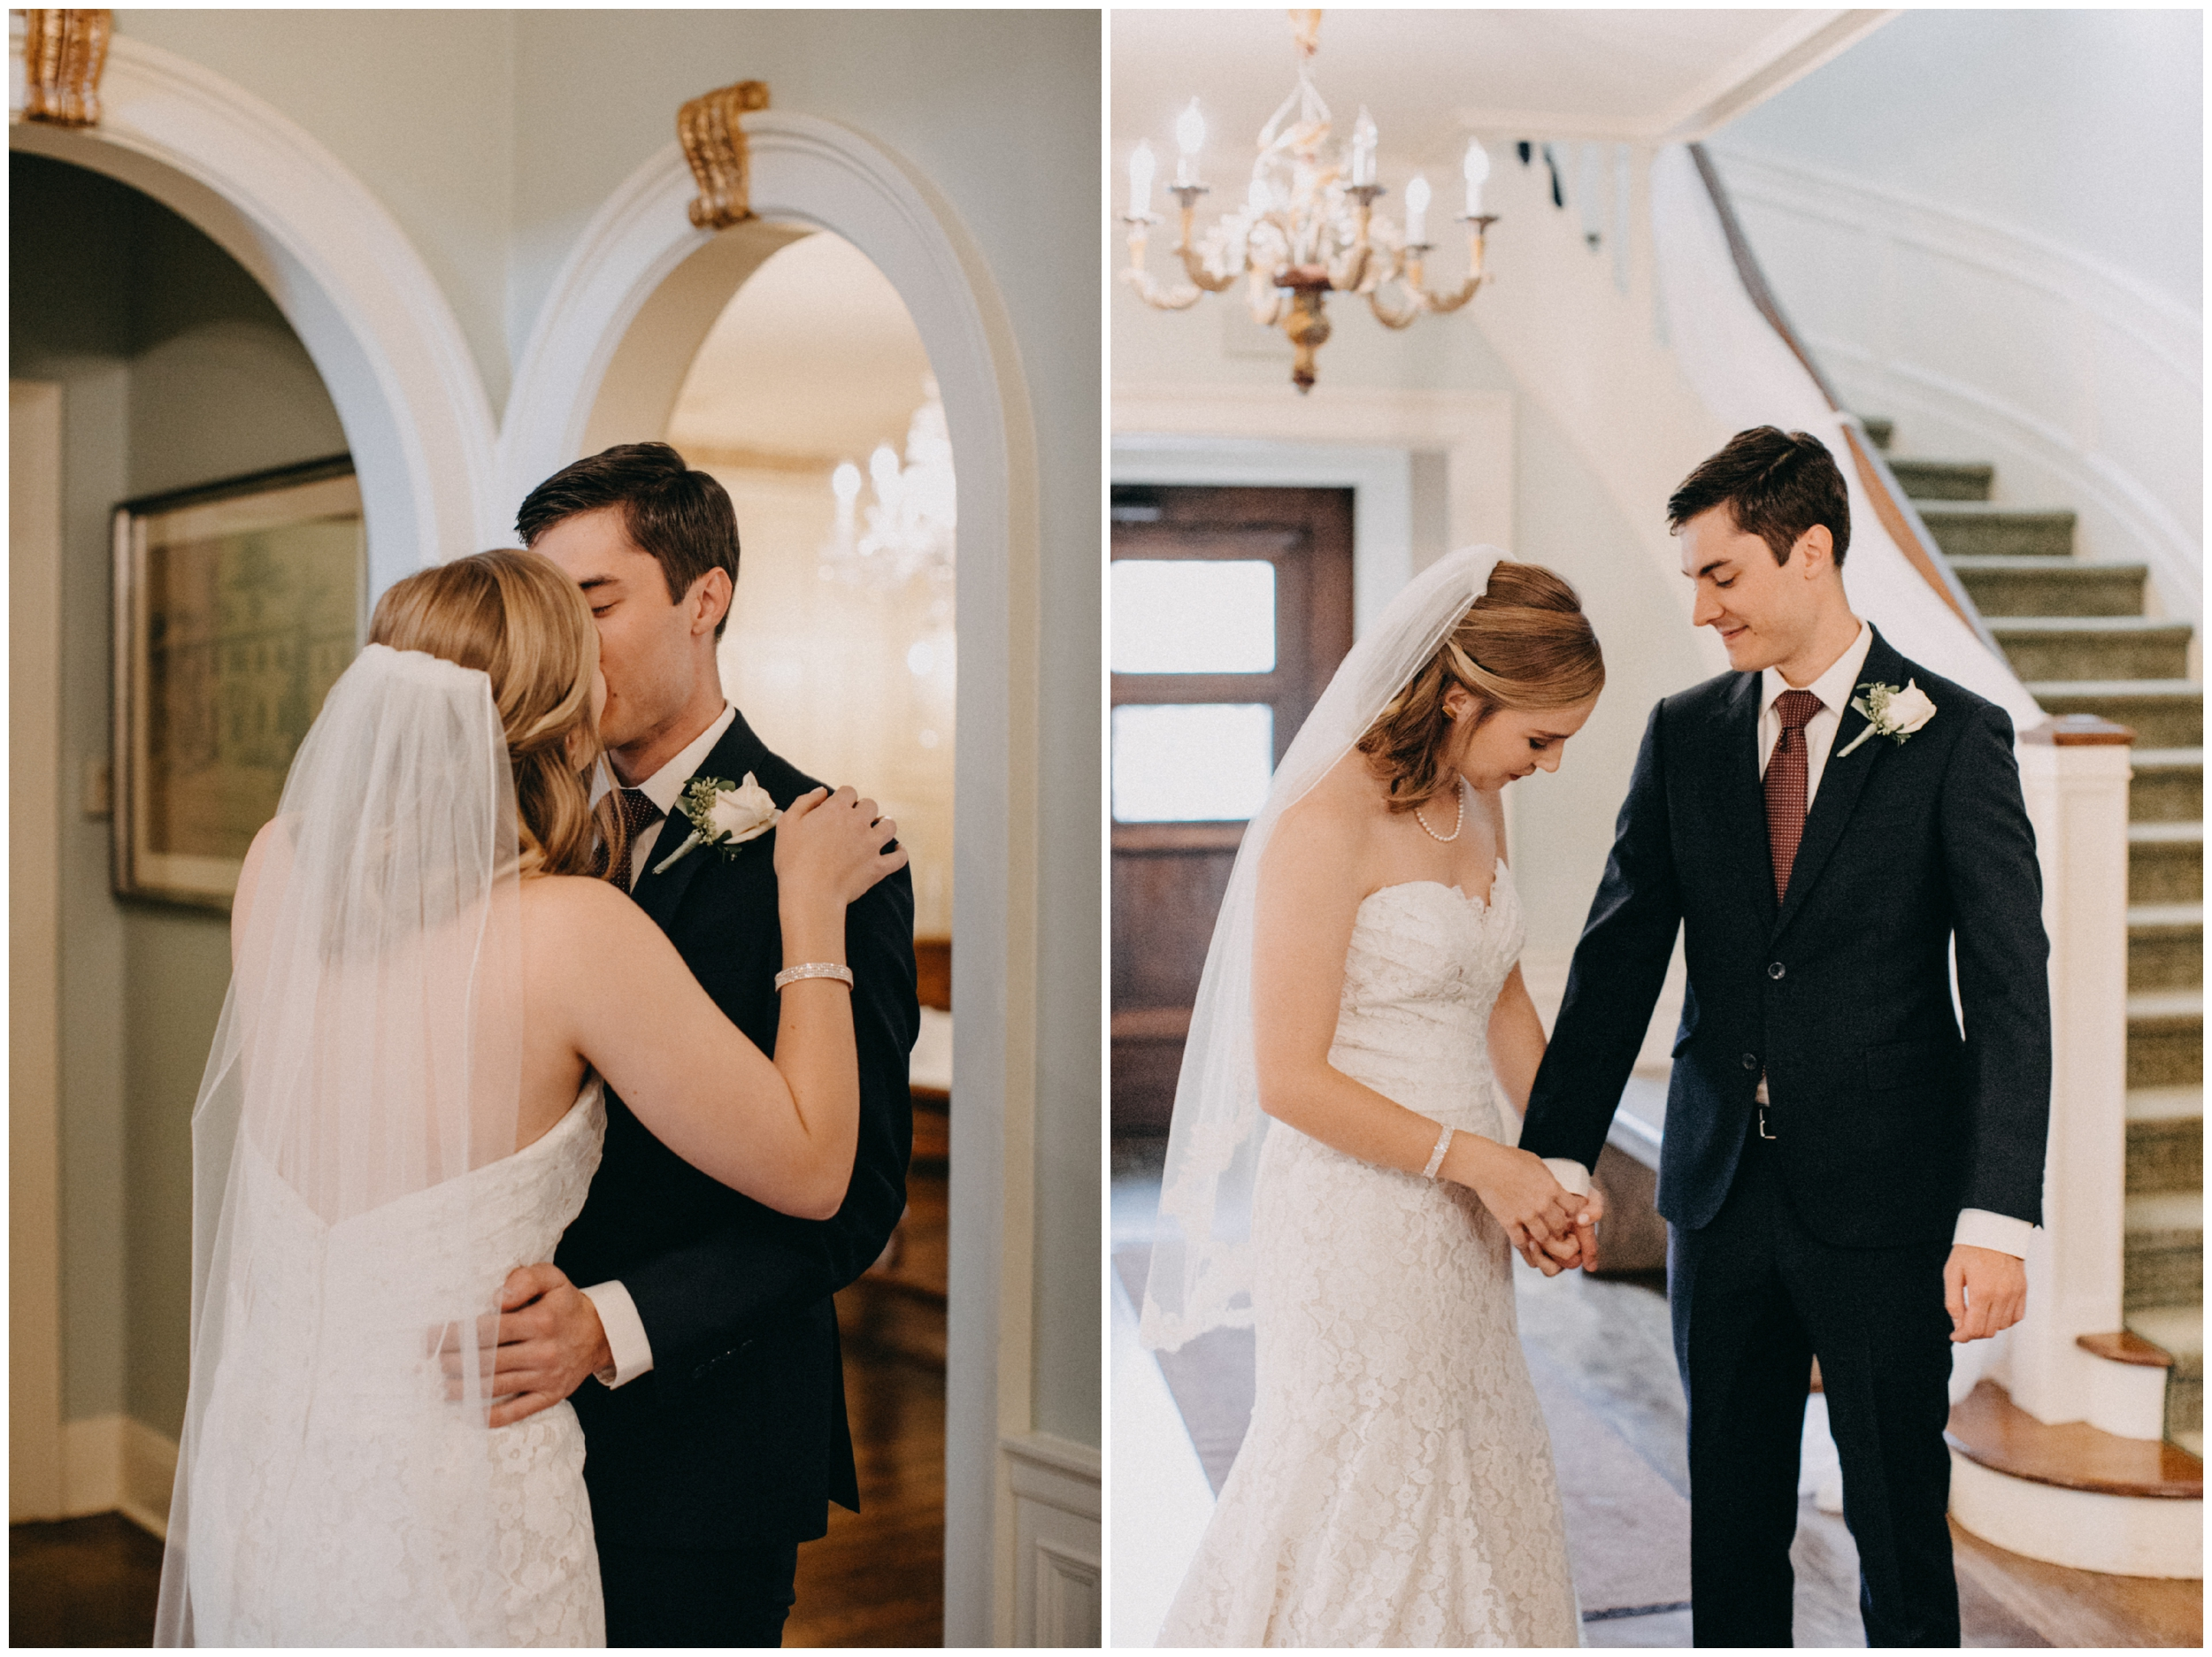 Elegant wedding at the St Paul College Club